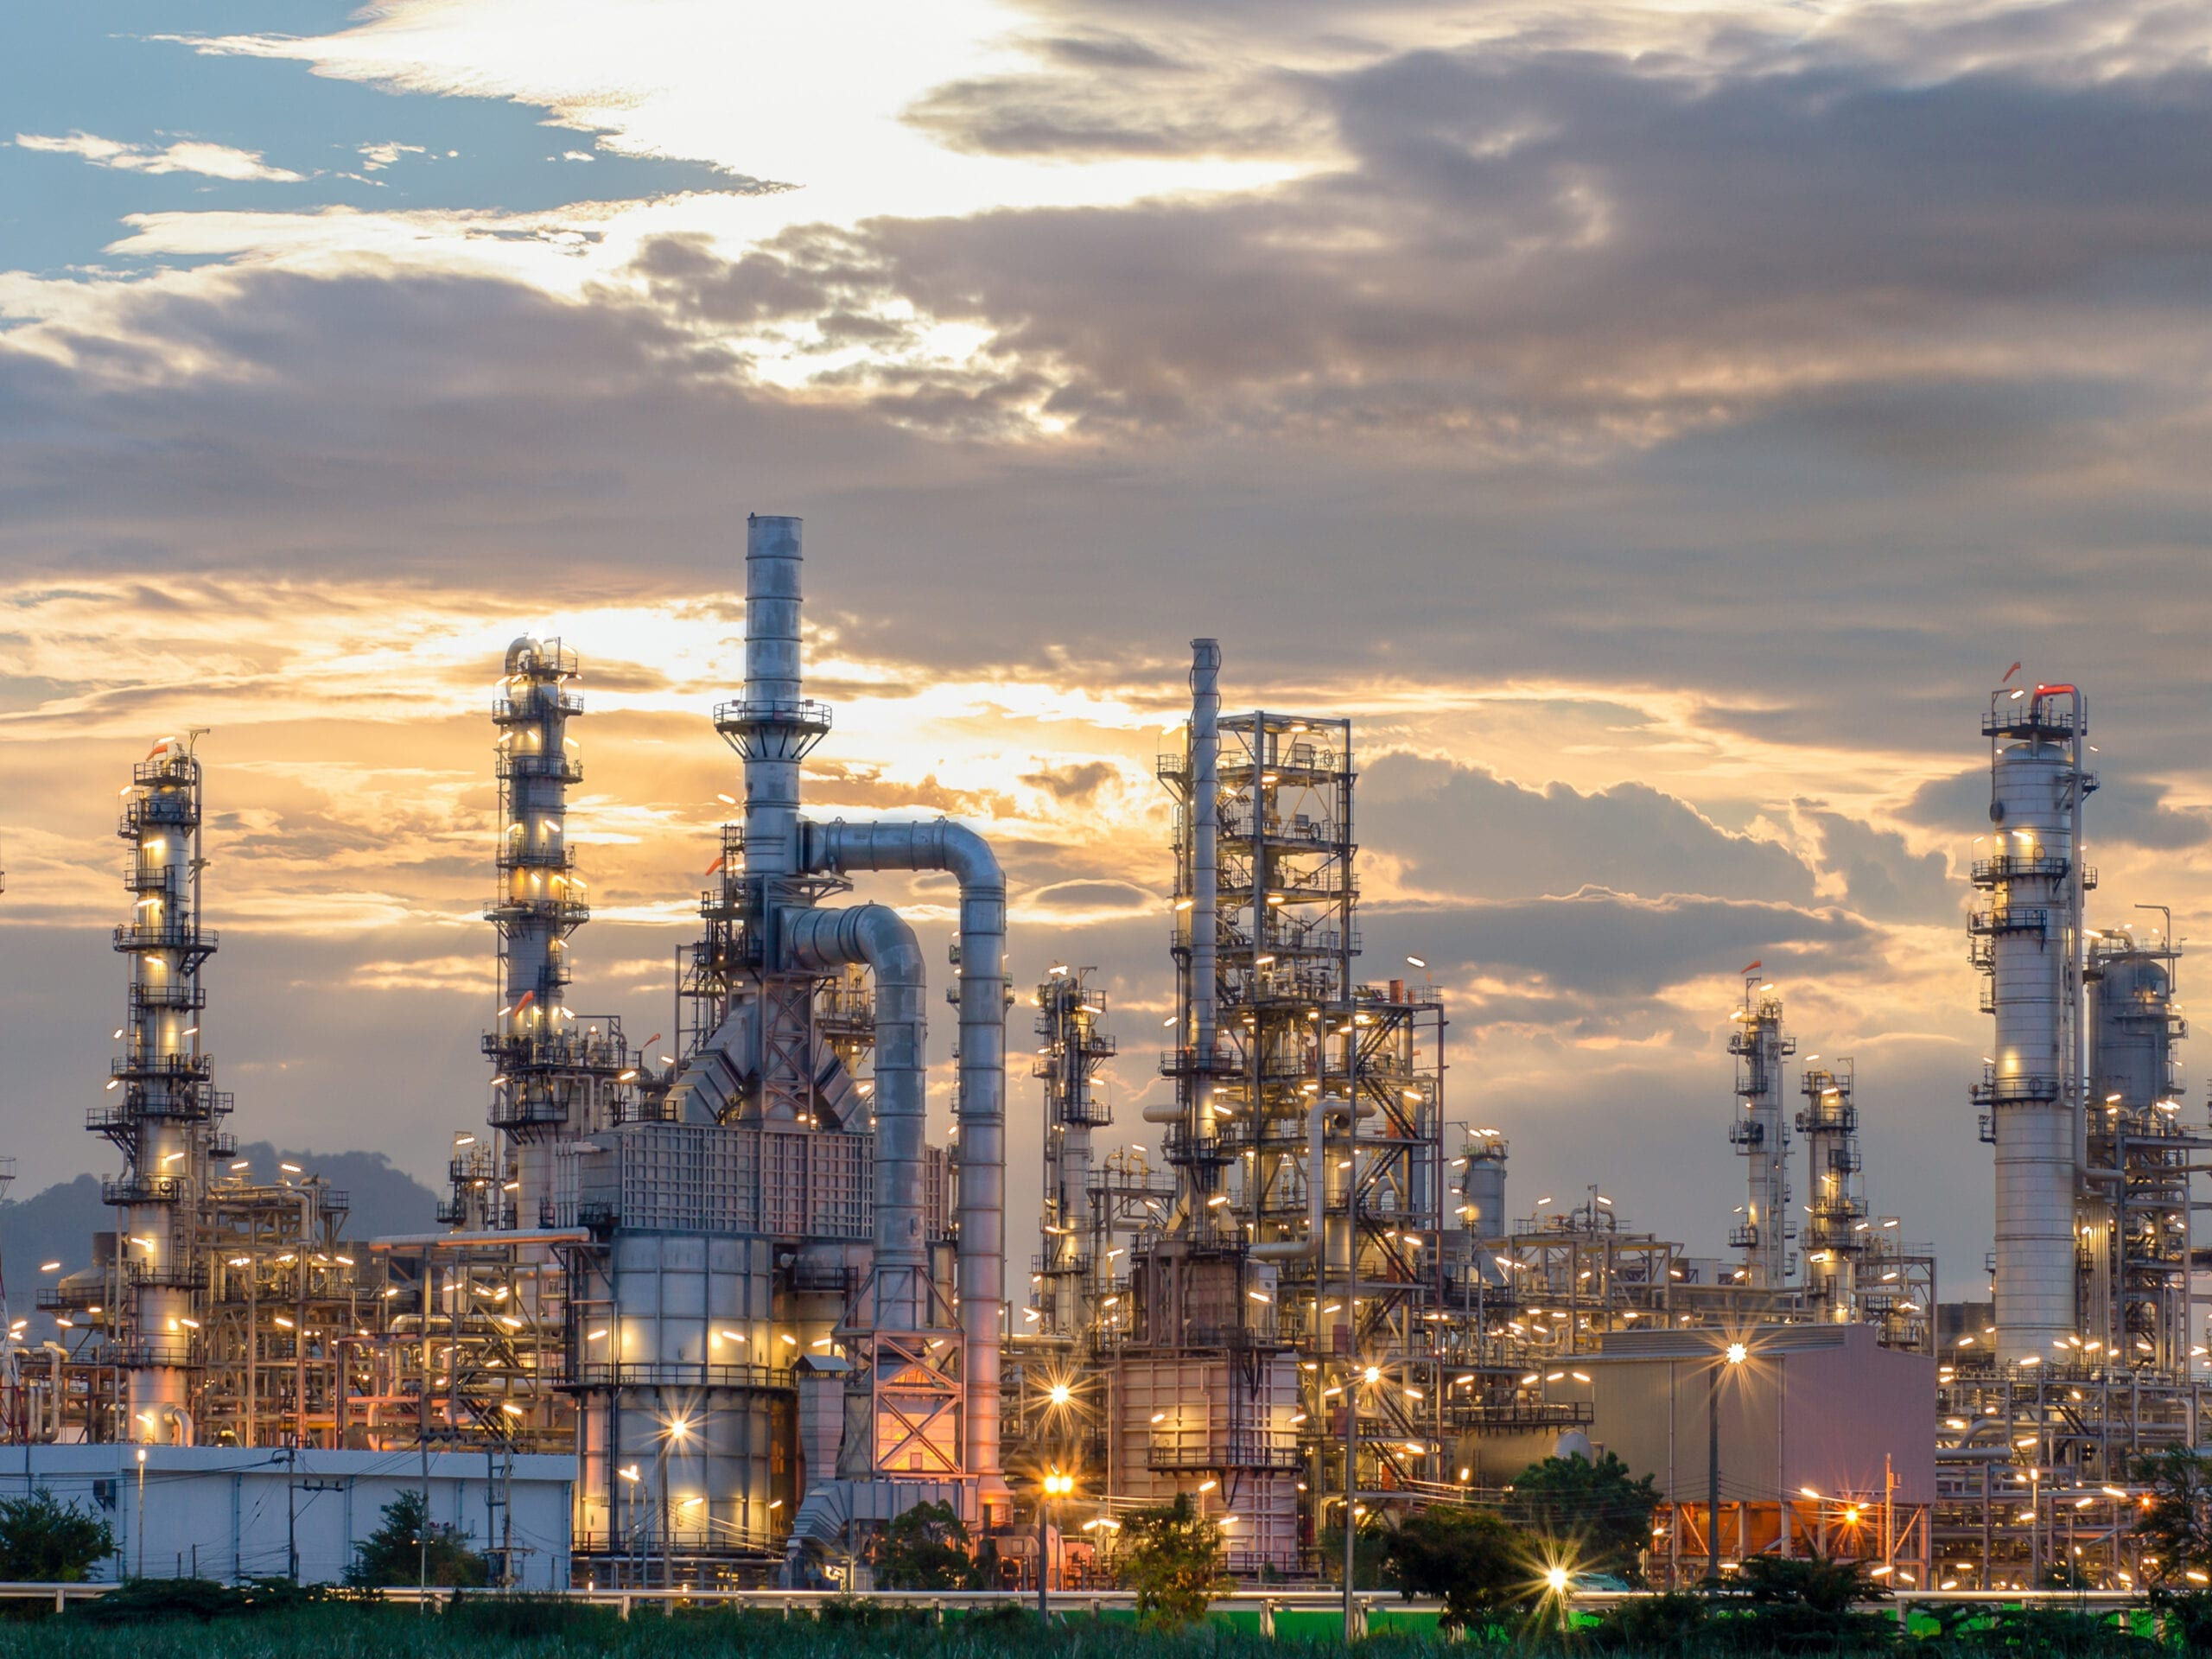 A chemical factory. RDM attorneys have decades of experience in toxic torts and asbestos litigation.